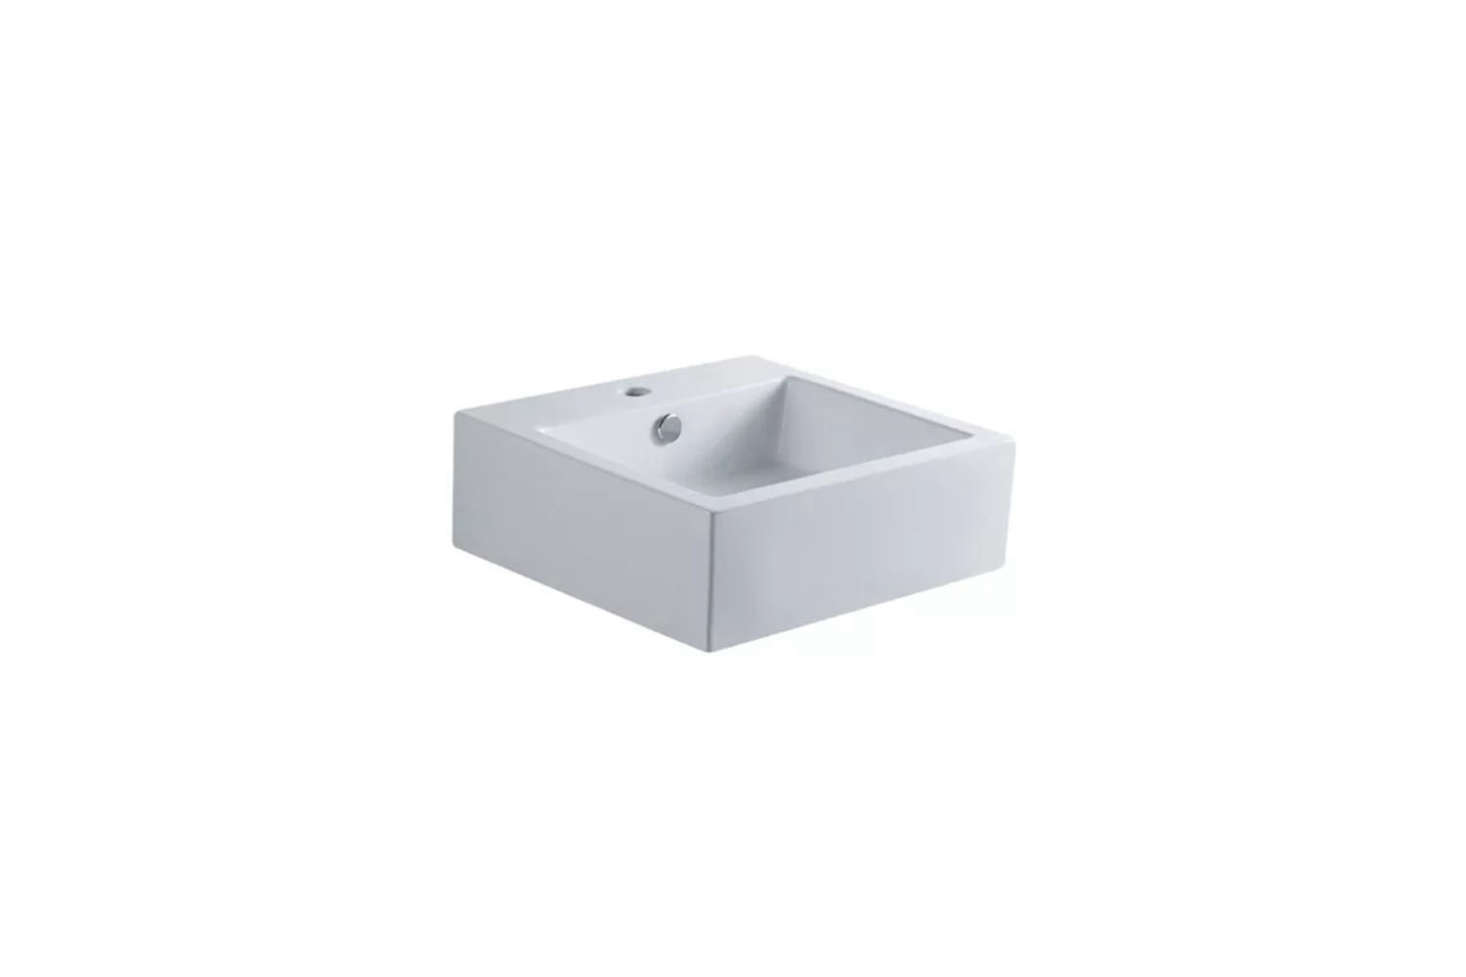 The basin is a Kingston Brass 18-Inch White Sierra Square Bath Sinkfor $192.83 at Faucet Direct.